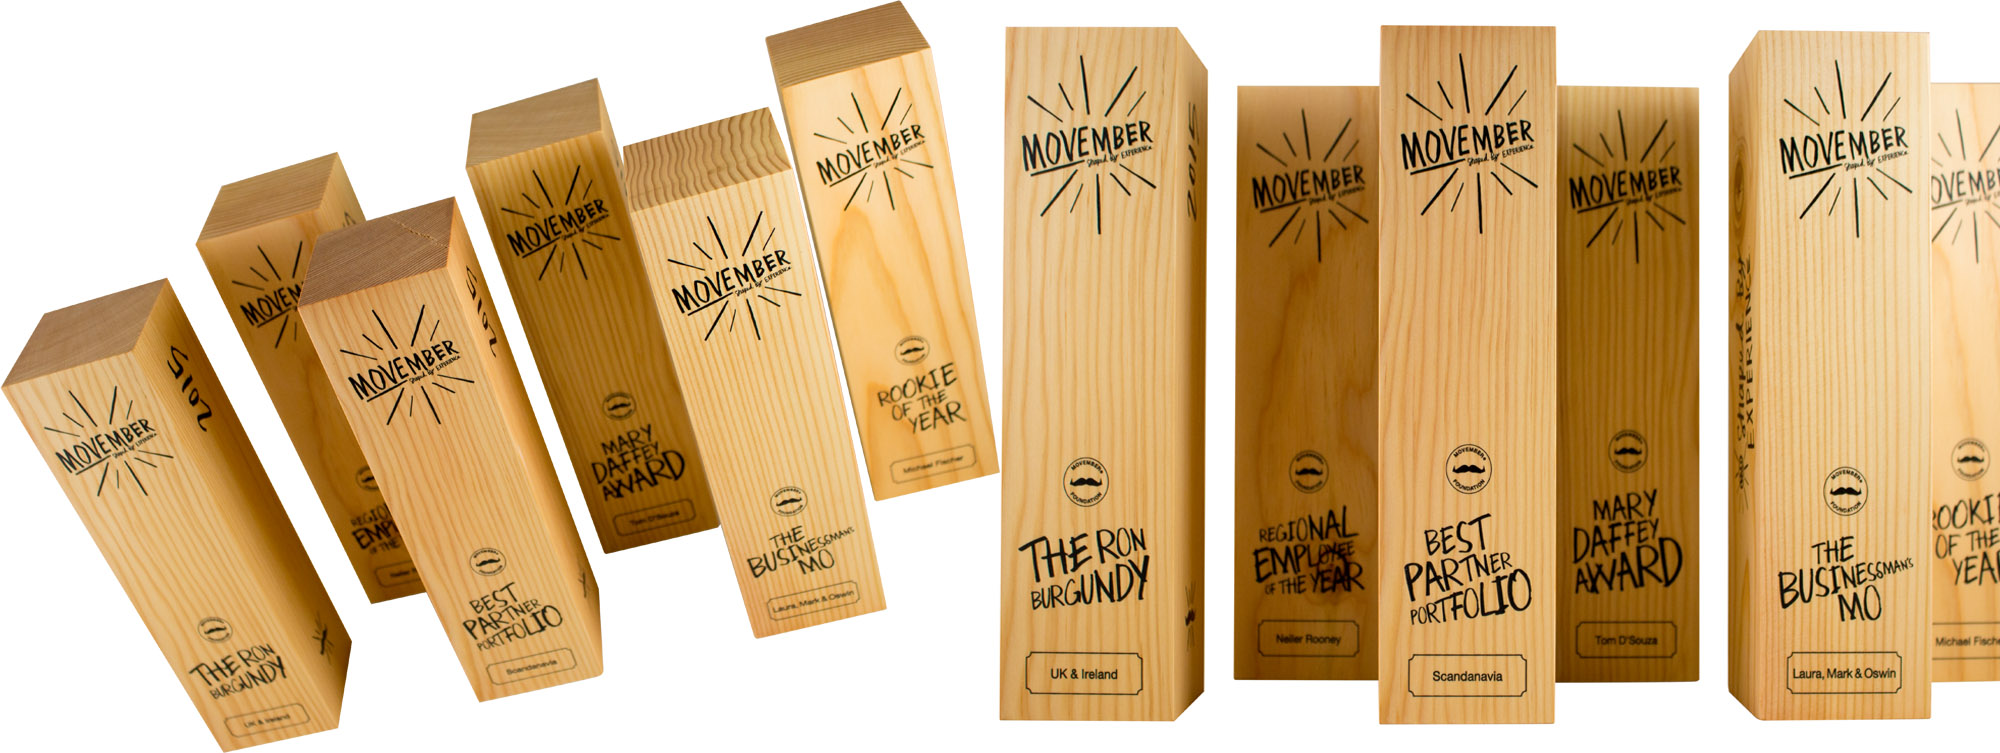 Movember-custom-eco-friendly-award-design